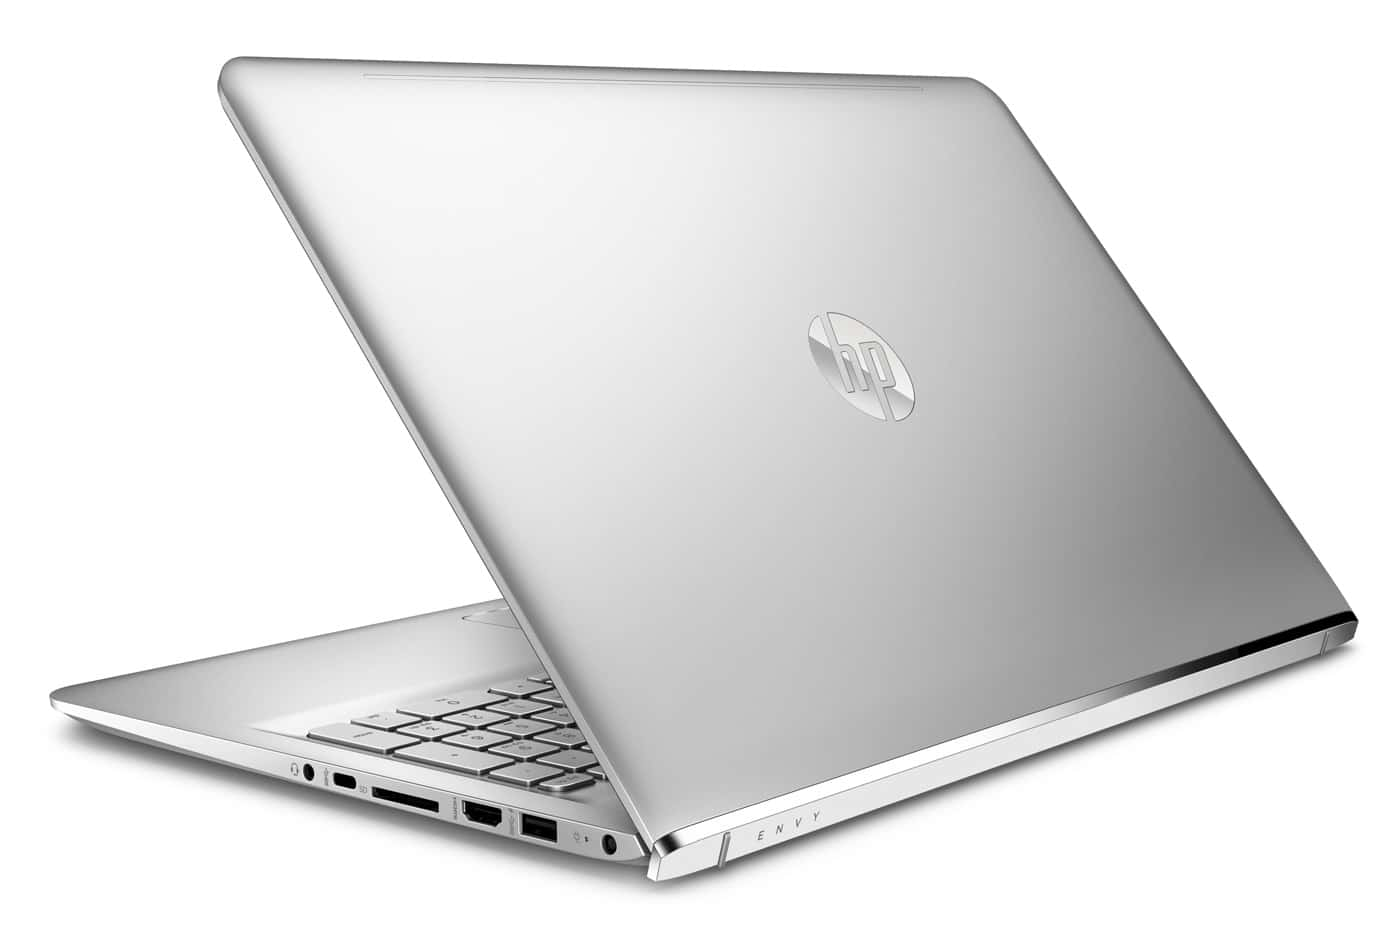 HP Envy 15-as115nf, Ultrabook 15 pouces IPS i7 Kaby SSD+HDD 8 Go à 959€